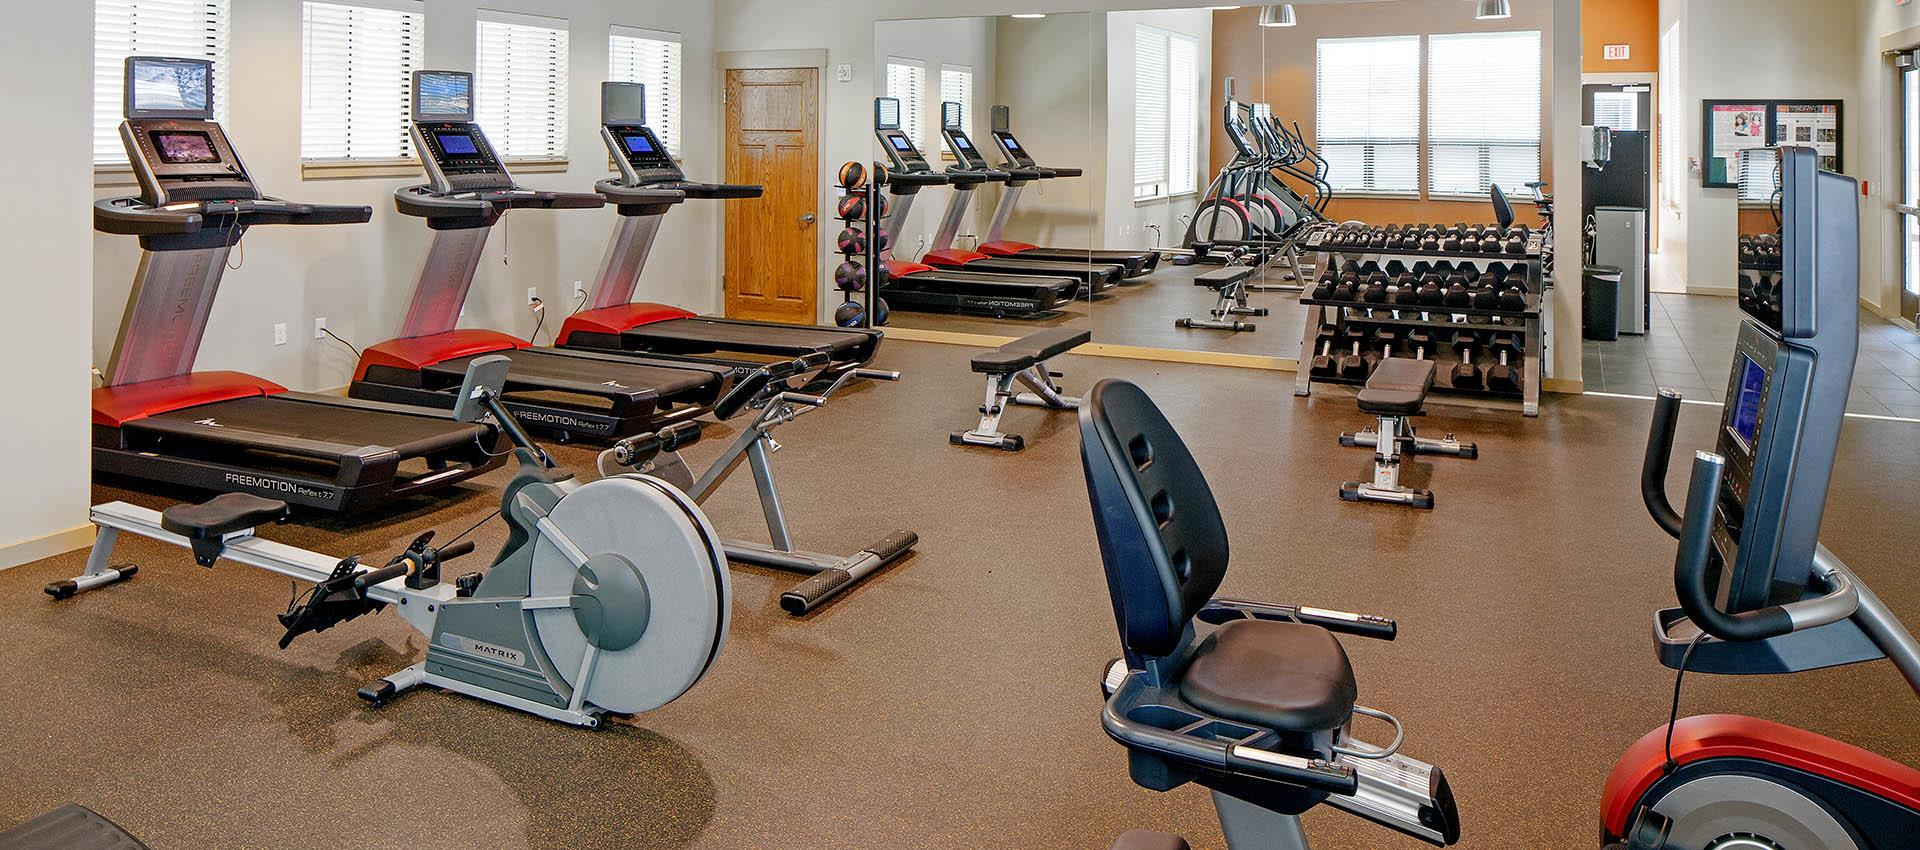 Well Equipped fitness center at Eddyline at Bridgeport in Portland, OR